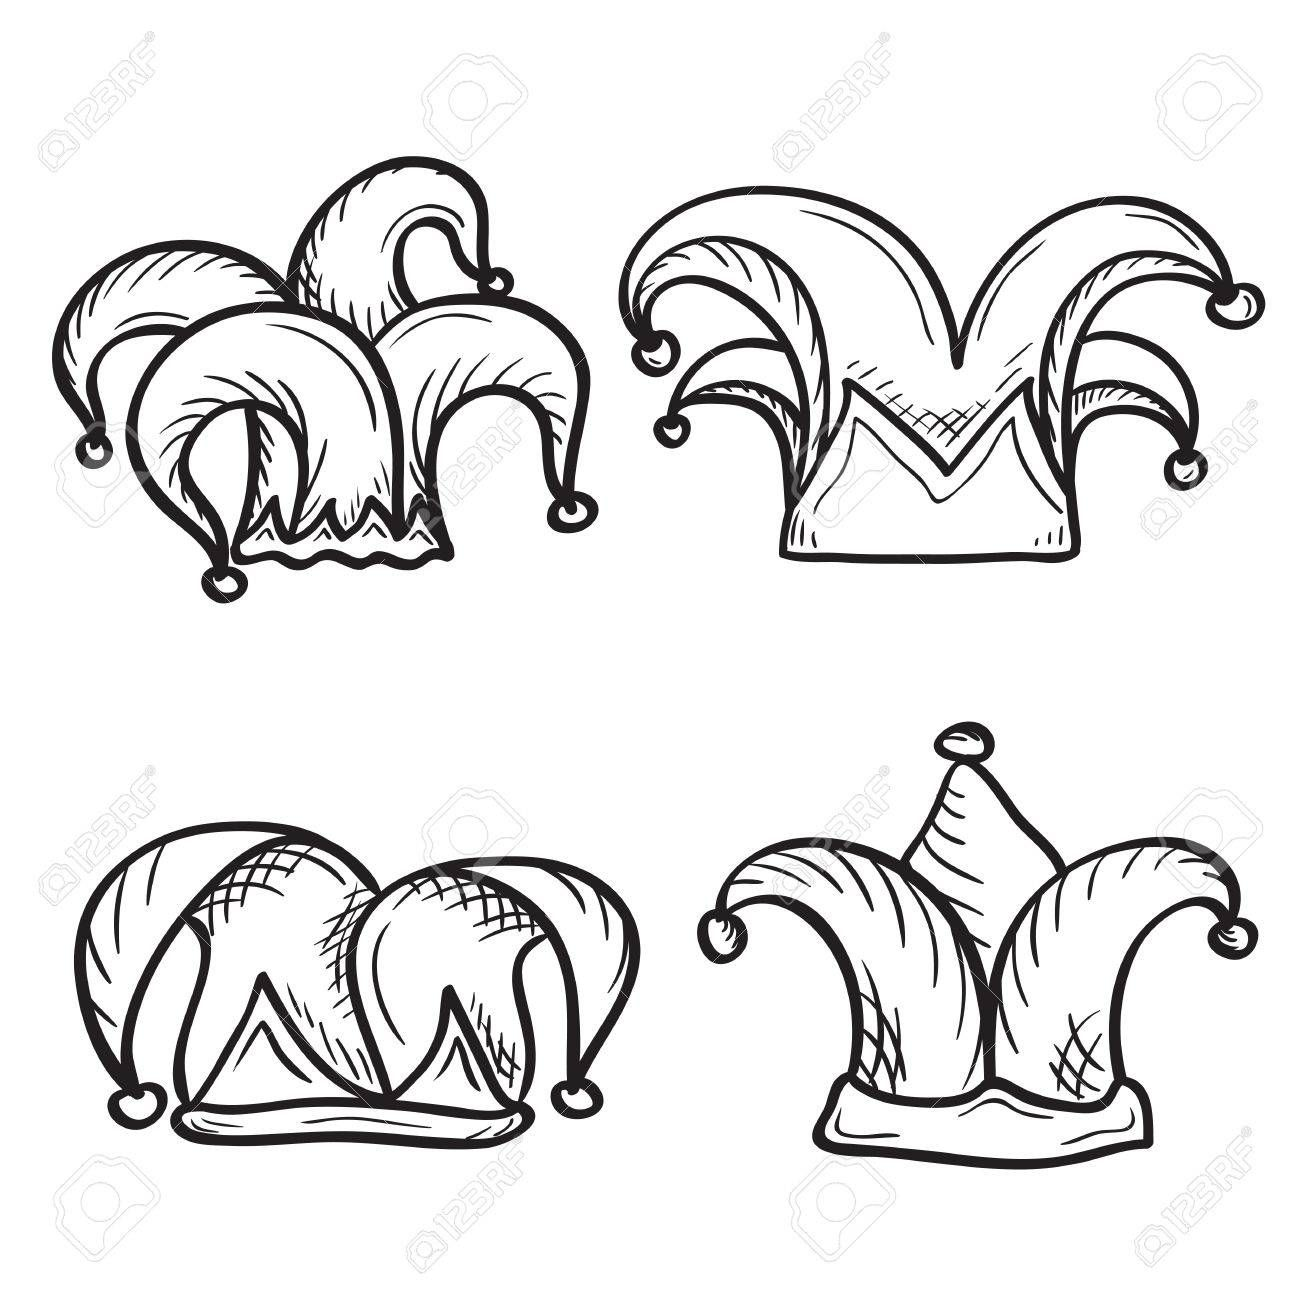 Image Result For Jester Hat Joker Card Tattoo Joker Drawings Easy Tattoos To Draw